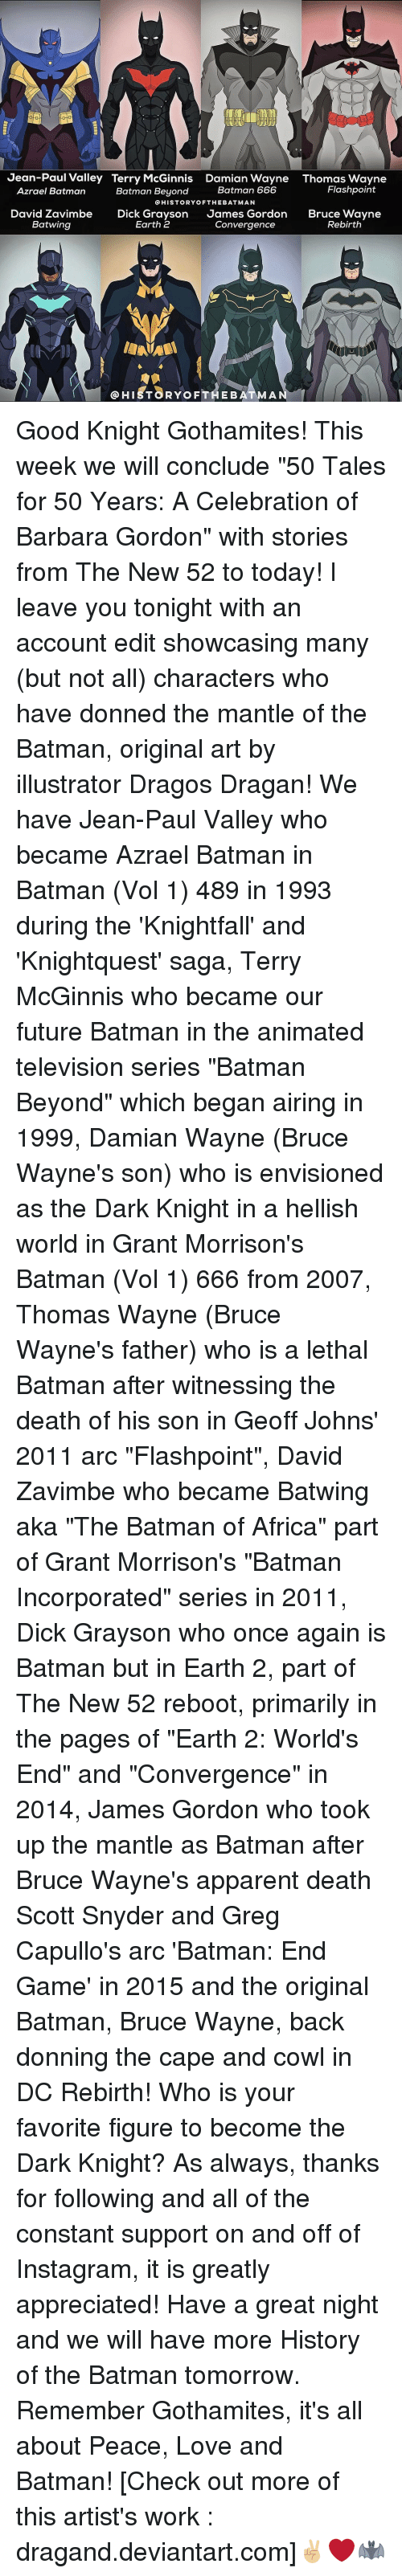 "Memes, Deviantart, and The Dark Knight: Jean-Paul Valley Terry McGinnis Damian Wayne Thomas Wayne  Flashpoint  Batman 666  Azrael Batman  Batman Beyond  HISTORY OF THE BATMAN  David Zavimbe  Dick Grayson  James Gordon  Bruce Wayne  Earth 2  Batwing  Convergence  Rebirth  HIST8RYoF THE BATMA Good Knight Gothamites! This week we will conclude ""50 Tales for 50 Years: A Celebration of Barbara Gordon"" with stories from The New 52 to today! I leave you tonight with an account edit showcasing many (but not all) characters who have donned the mantle of the Batman, original art by illustrator Dragos Dragan! We have Jean-Paul Valley who became Azrael Batman in Batman (Vol 1) 489 in 1993 during the 'Knightfall' and 'Knightquest' saga, Terry McGinnis who became our future Batman in the animated television series ""Batman Beyond"" which began airing in 1999, Damian Wayne (Bruce Wayne's son) who is envisioned as the Dark Knight in a hellish world in Grant Morrison's Batman (Vol 1) 666 from 2007, Thomas Wayne (Bruce Wayne's father) who is a lethal Batman after witnessing the death of his son in Geoff Johns' 2011 arc ""Flashpoint"", David Zavimbe who became Batwing aka ""The Batman of Africa"" part of Grant Morrison's ""Batman Incorporated"" series in 2011, Dick Grayson who once again is Batman but in Earth 2, part of The New 52 reboot, primarily in the pages of ""Earth 2: World's End"" and ""Convergence"" in 2014, James Gordon who took up the mantle as Batman after Bruce Wayne's apparent death Scott Snyder and Greg Capullo's arc 'Batman: End Game' in 2015 and the original Batman, Bruce Wayne, back donning the cape and cowl in DC Rebirth! Who is your favorite figure to become the Dark Knight? As always, thanks for following and all of the constant support on and off of Instagram, it is greatly appreciated! Have a great night and we will have more History of the Batman tomorrow. Remember Gothamites, it's all about Peace, Love and Batman! [Check out more of this artist's work : dragand.deviantart.com]✌🏼❤🦇"